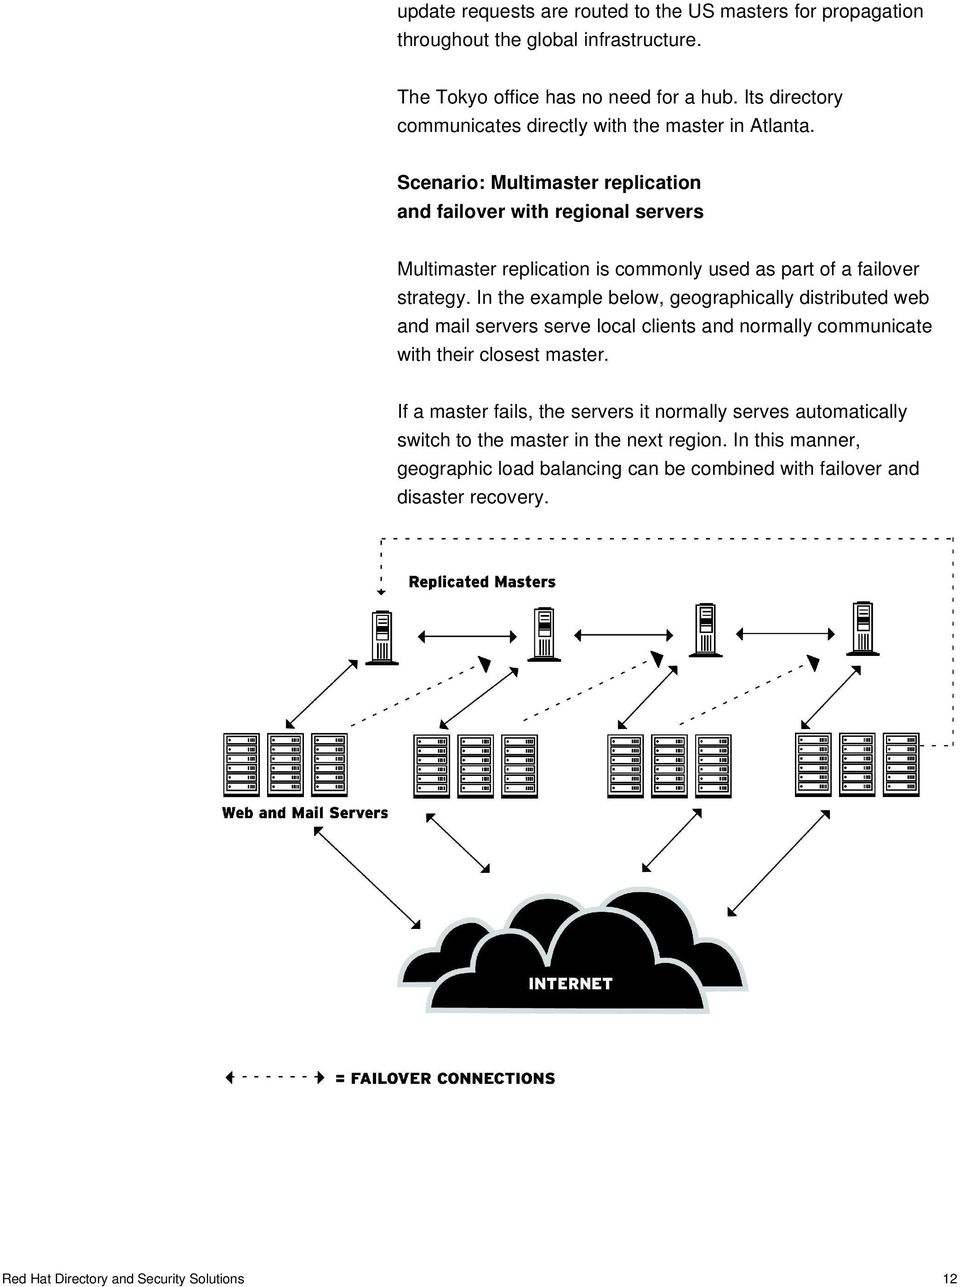 Scenario: Multimaster replication and failover with regional servers Multimaster replication is commonly used as part of a failover strategy.